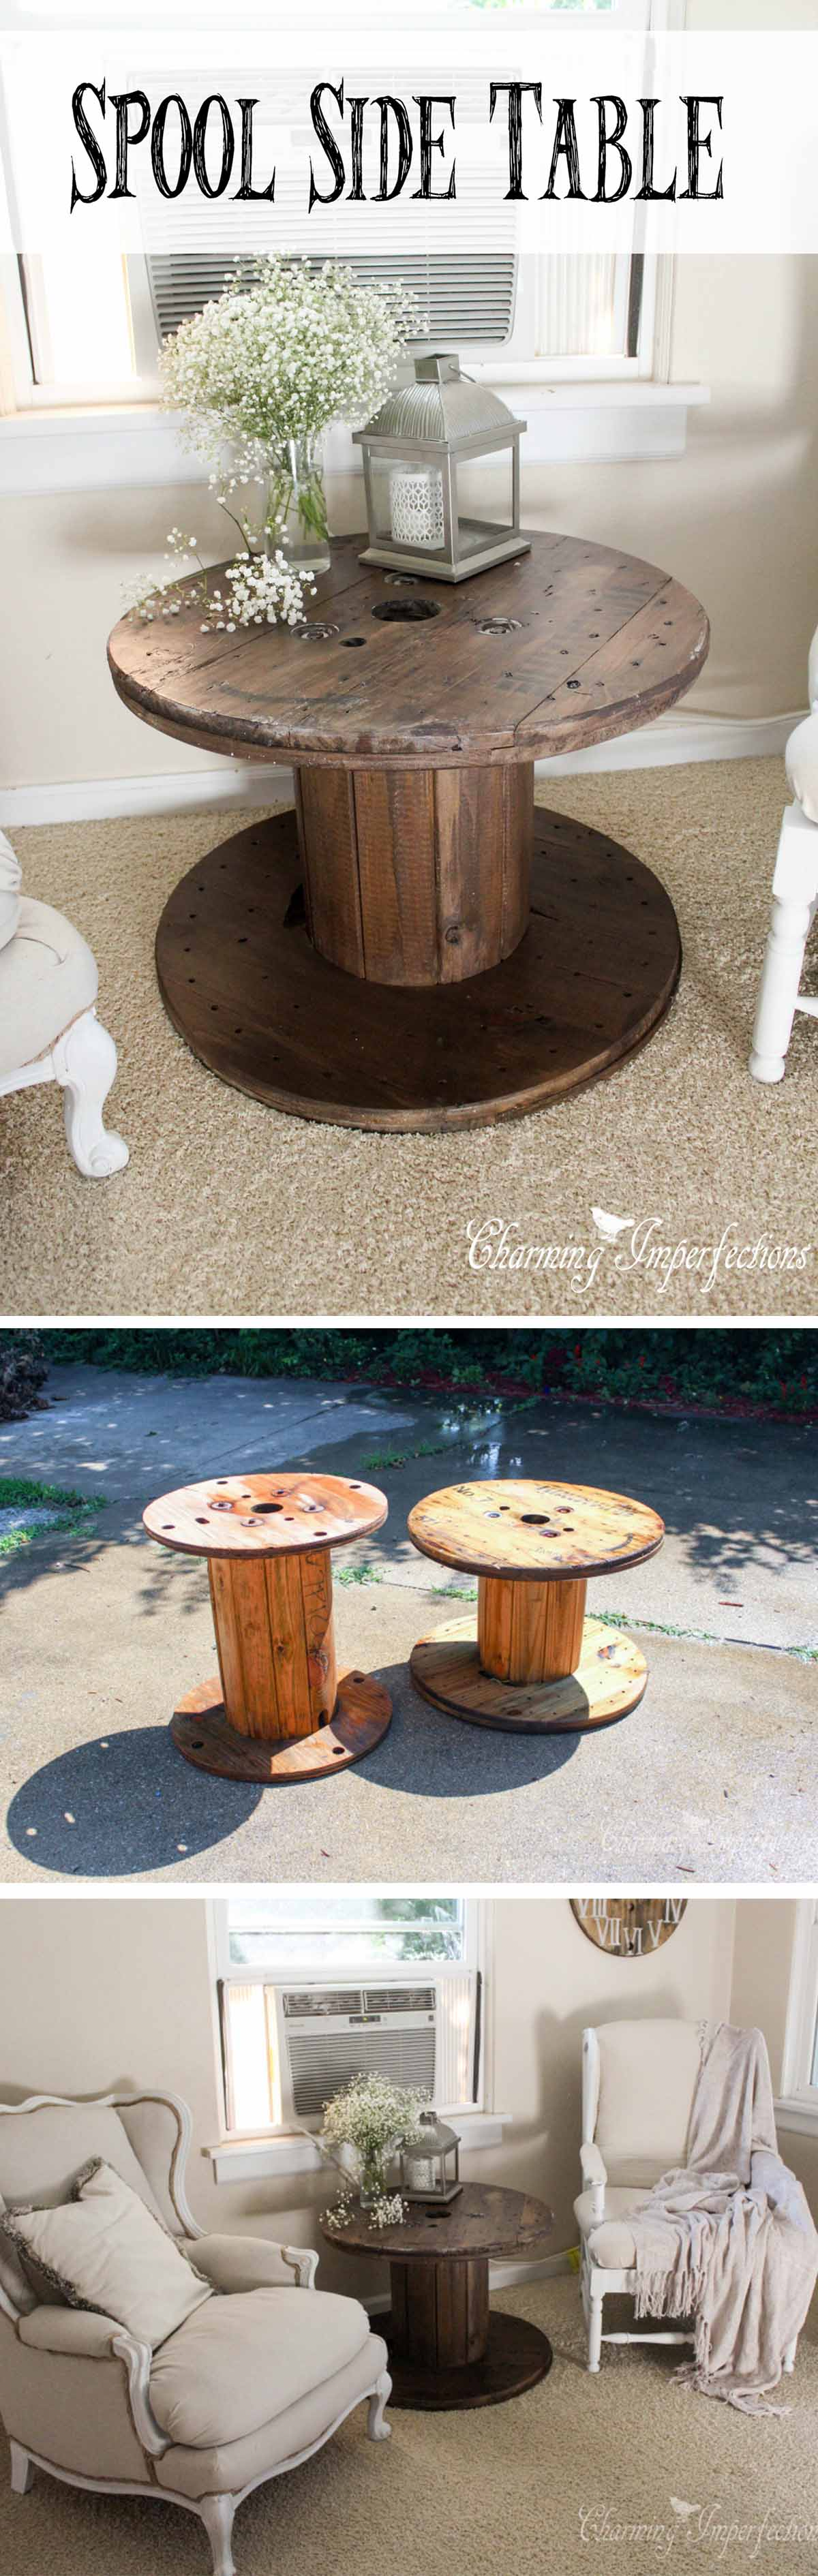 best diy farmhouse coffee table ideas and designs for homebnc accent easy industrial wooden spool inexpensive side tables mini tiffany style lamps inch legs small storage chest